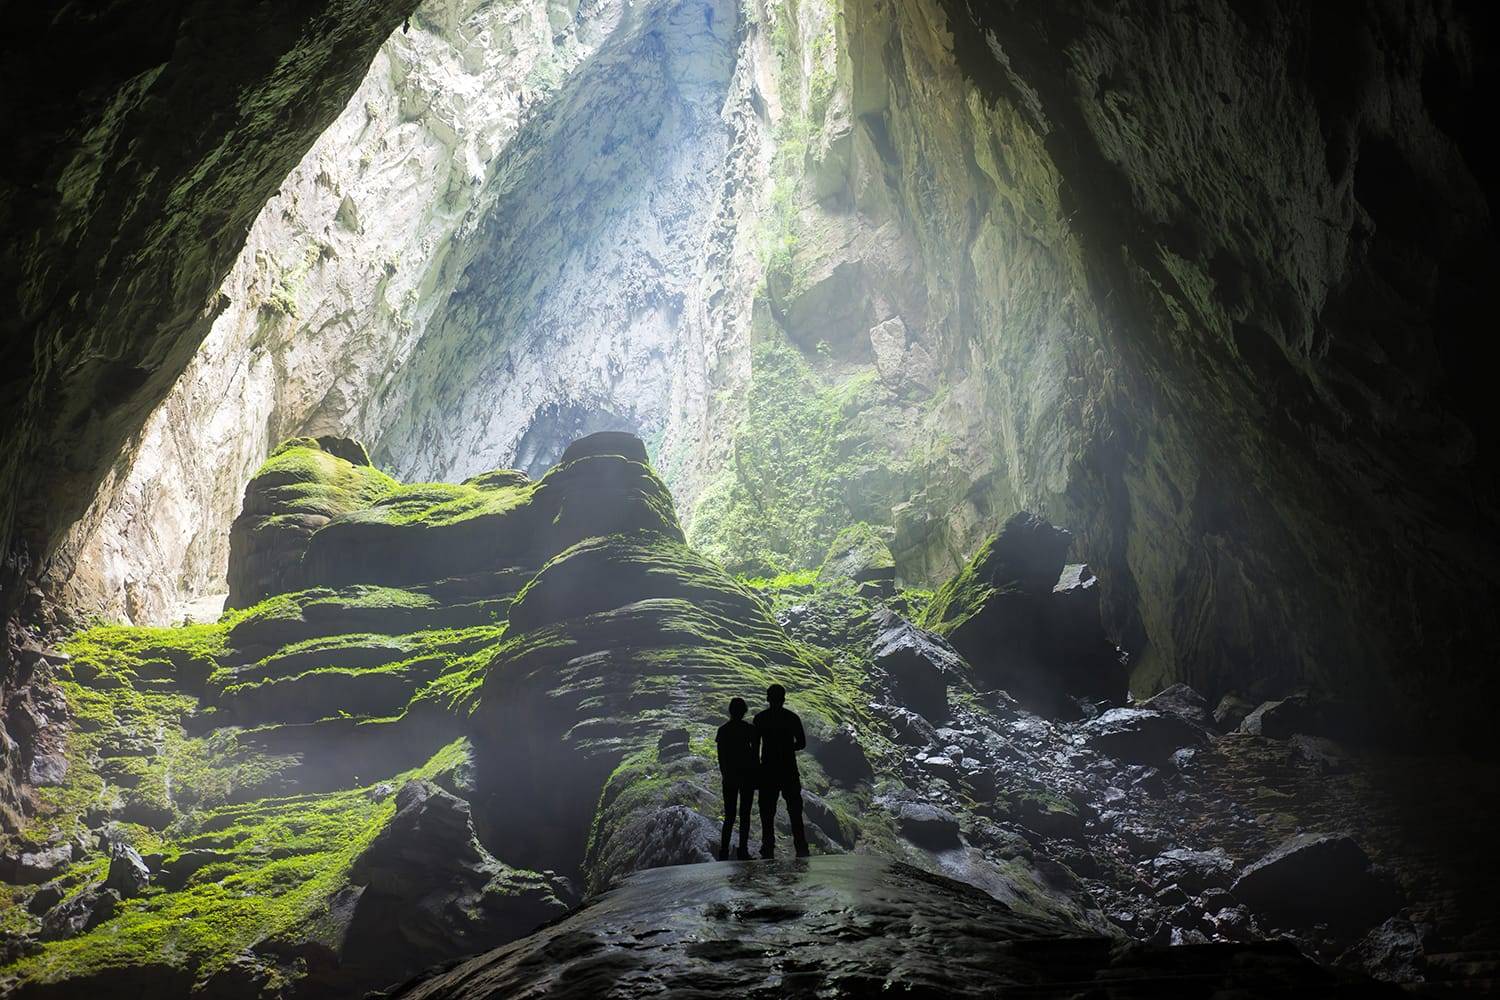 Mystery misty cave entrance in Son Doong Cave, the largest cave in the world in UNESCO World Heritage Site Phong Nha-Ke Bang National Park, Quang Binh province, Vietnam